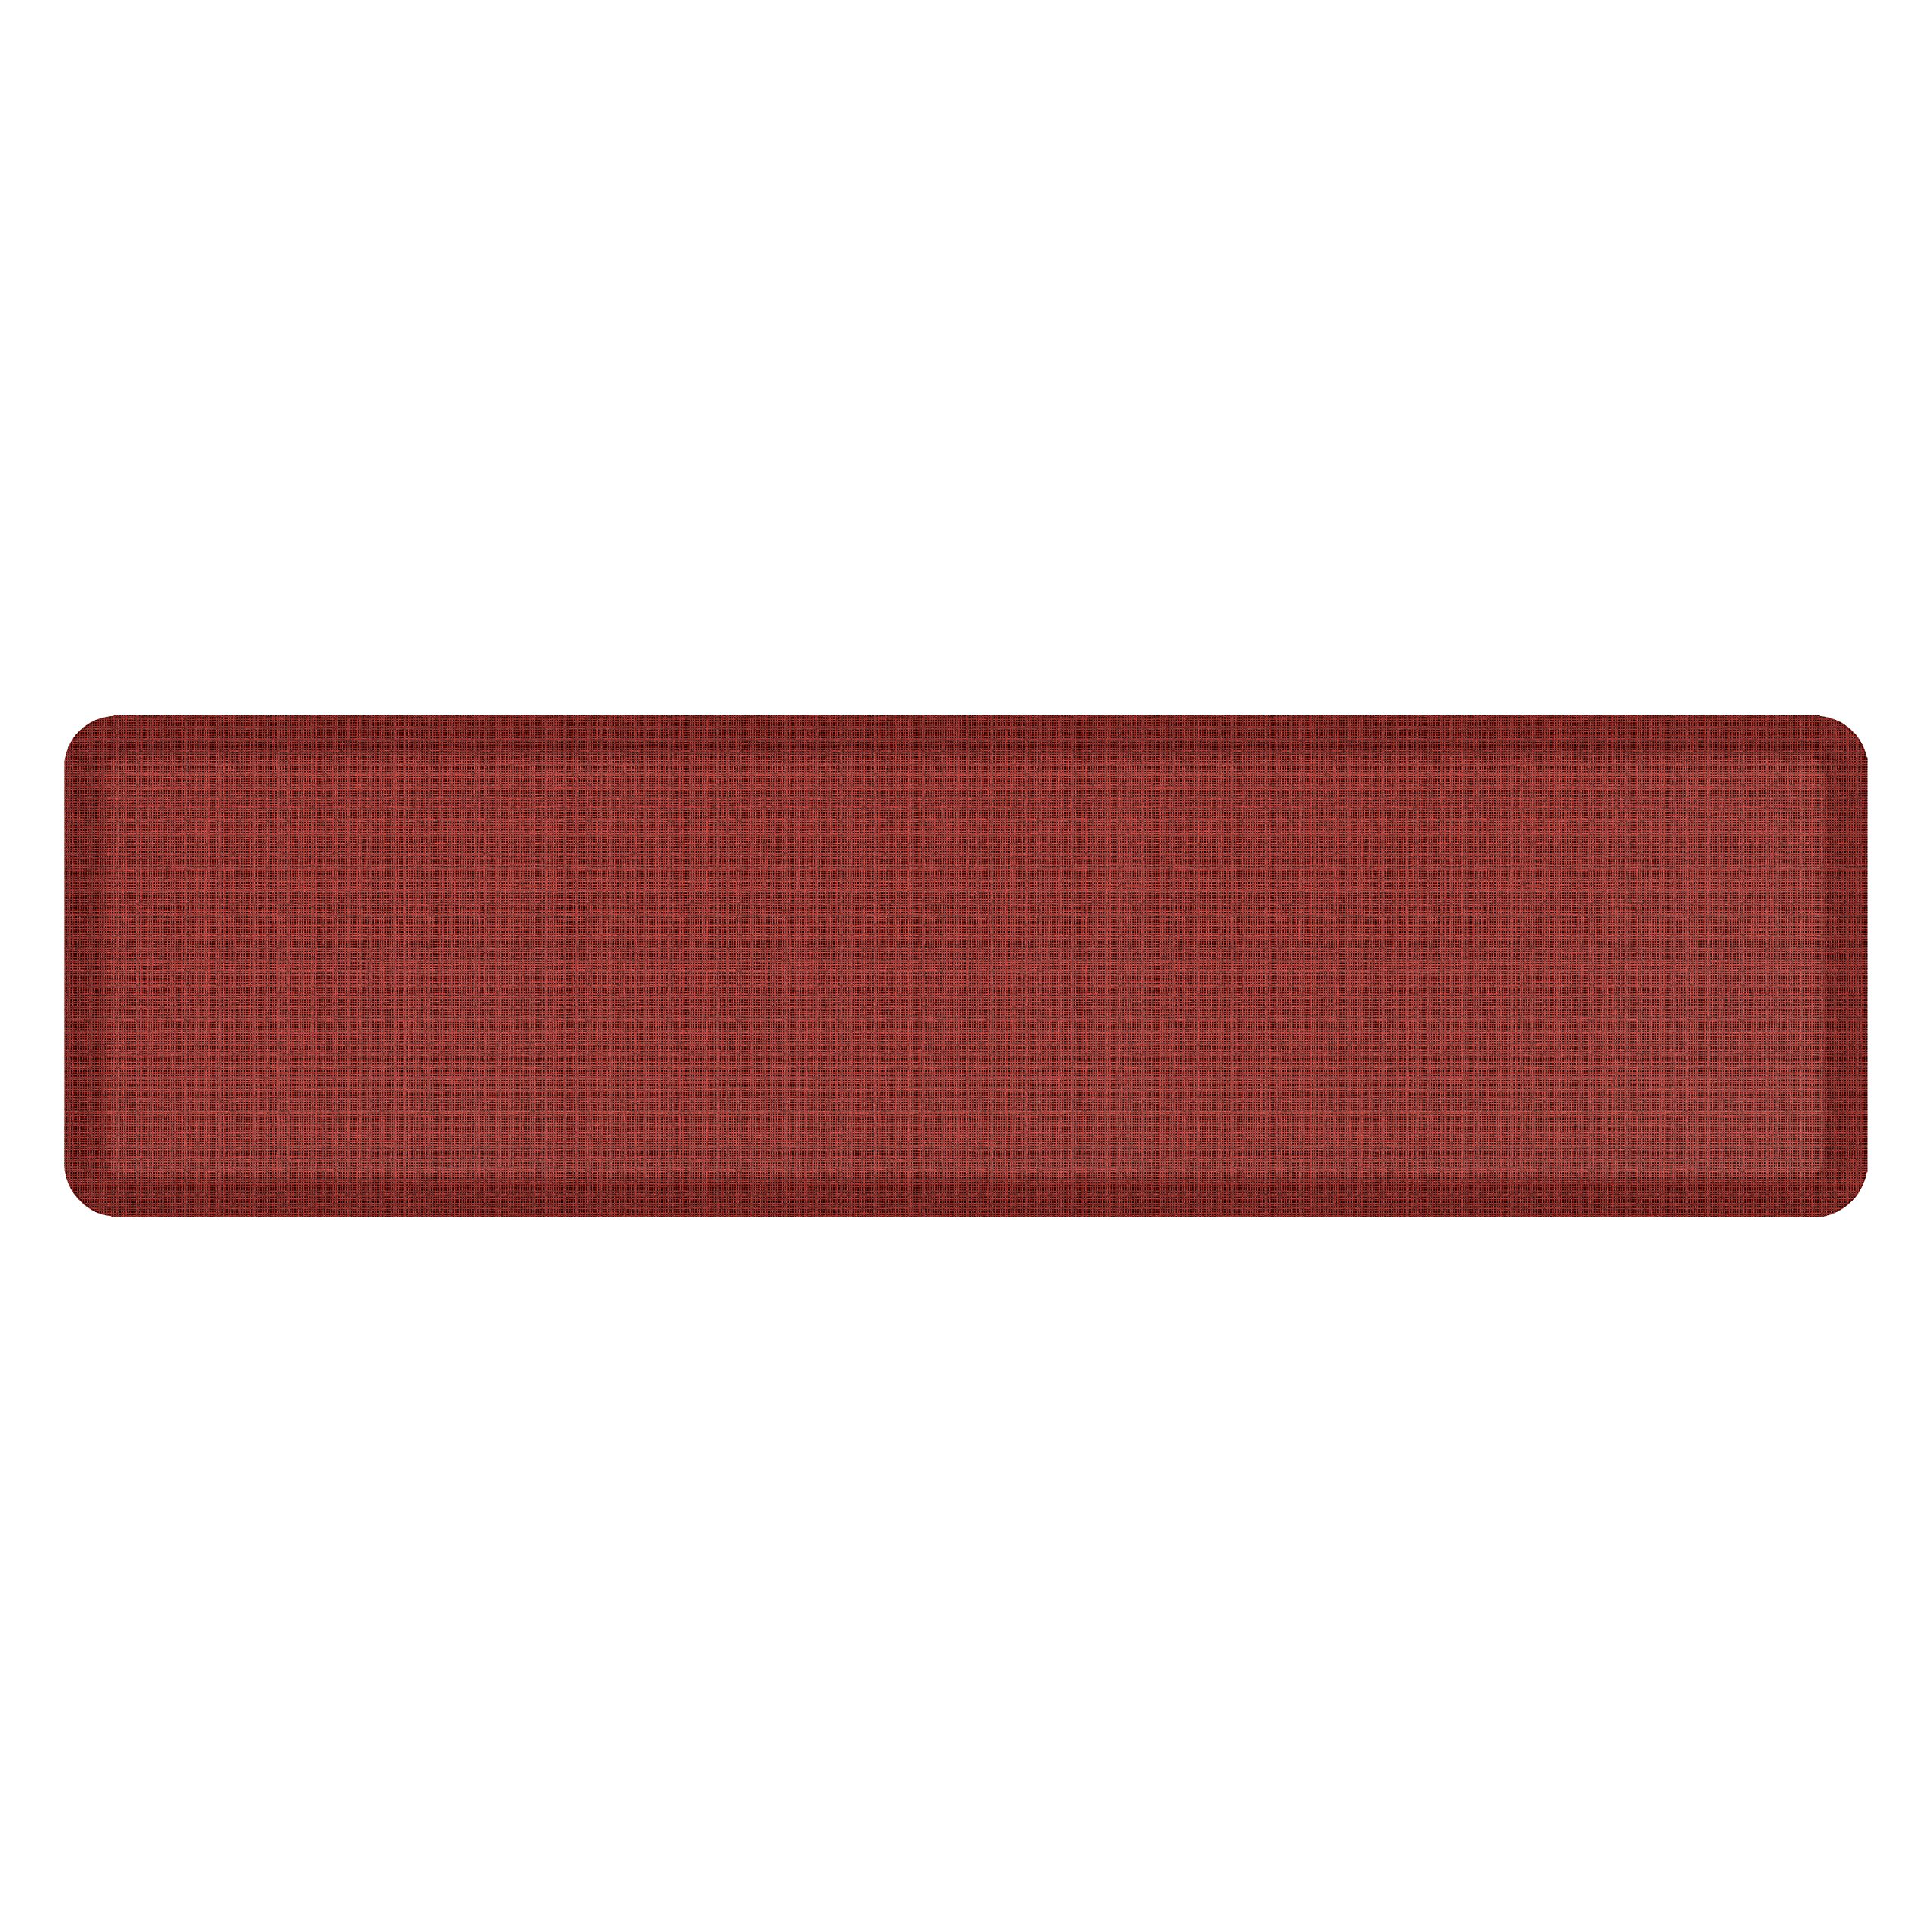 """NewLife by GelPro Anti-Fatigue Designer Comfort Kitchen Floor Mat, 20x72'', Tweed Barn Red Stain Resistant Surface with 3/4"""" Thick Ergo-foam Core for Health and Wellness"""